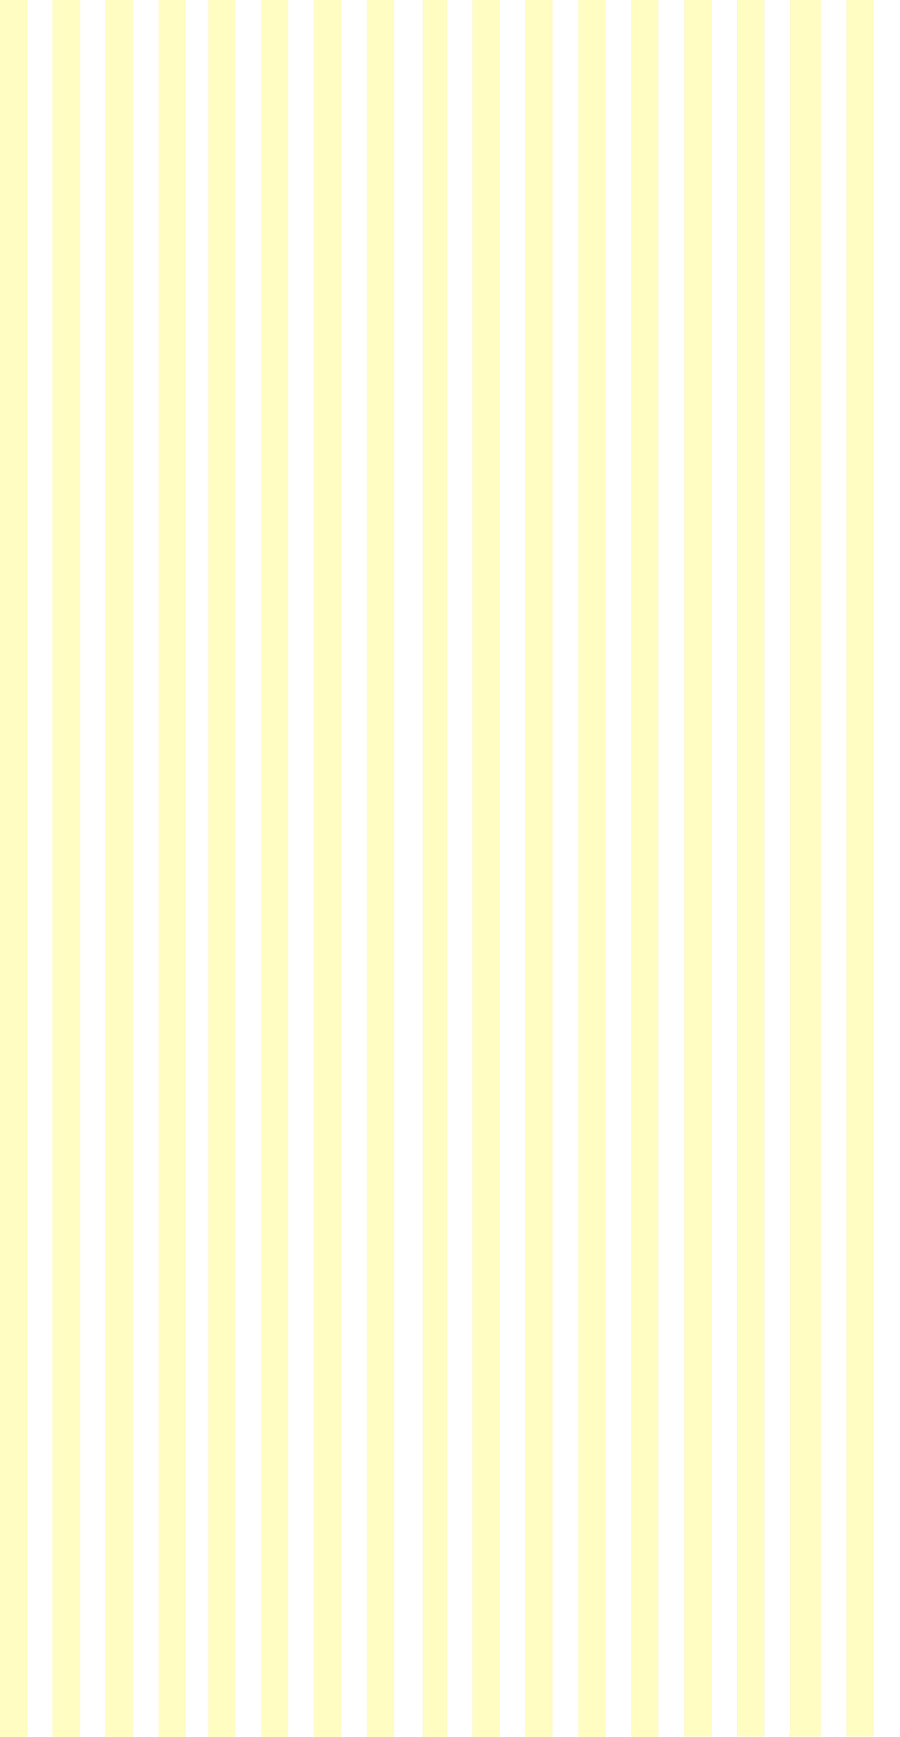 Discover Ideas About Pastel Color Background Find And Follow Posts Tagged Pastel Wallpaper Yellow Aesthetic Pastel Backgrounds Tumblr Pastel Yellow Wallpaper